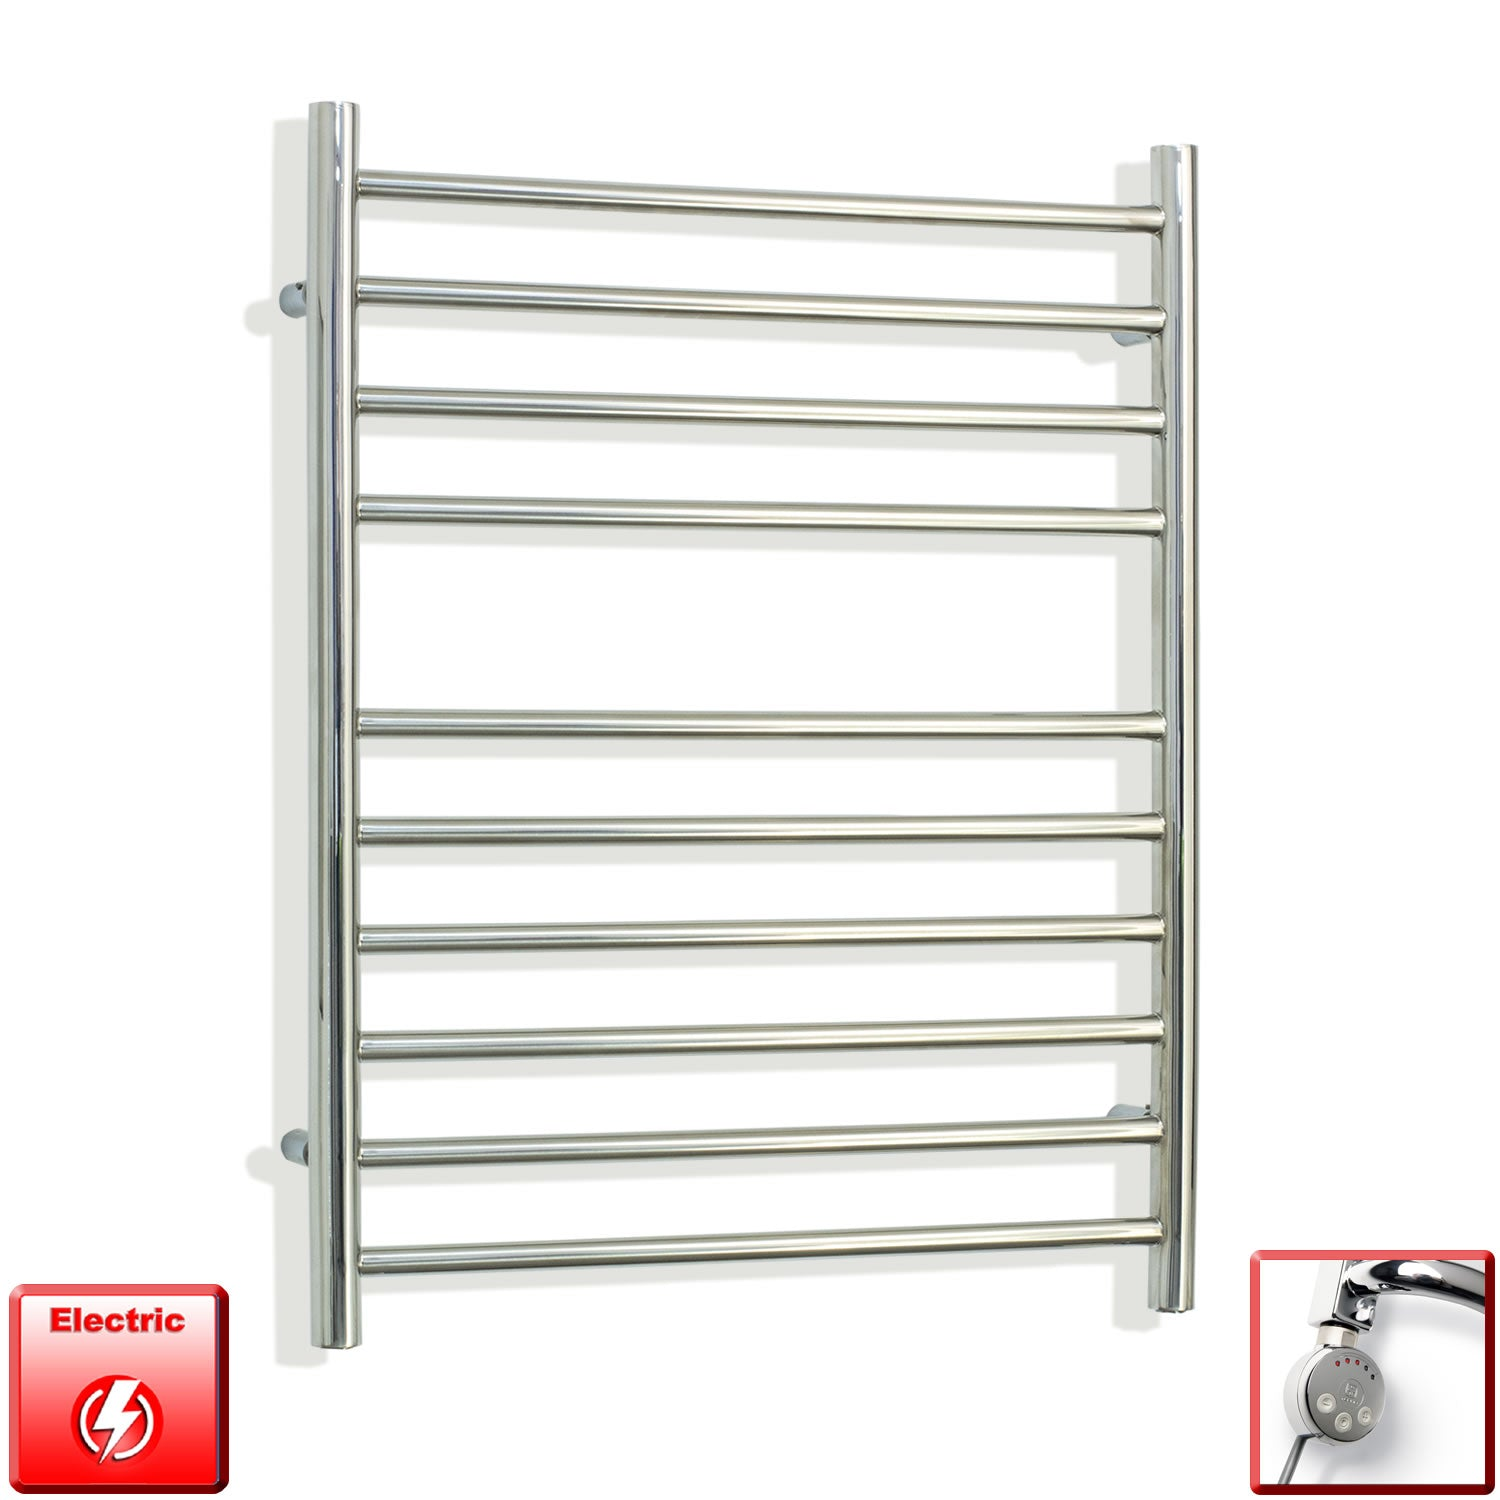 750 mm High 600 mm Wide Pre-Filled Electric Stainless Steel Heated Towel Rail Radiator meg thermostatic heating element